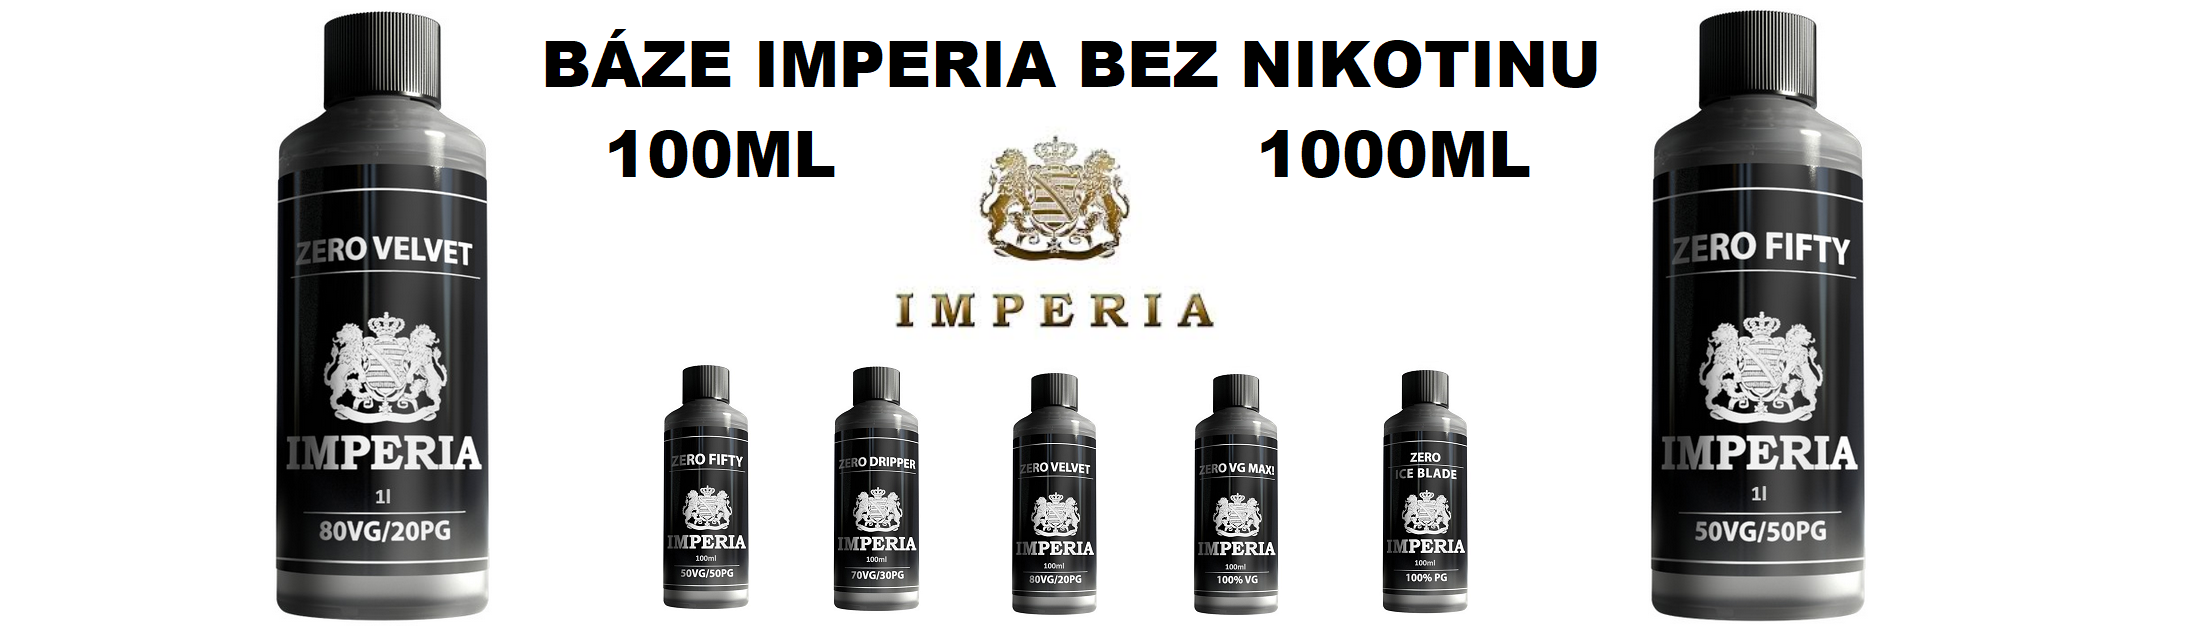 baze-imperia-velvet-fifty-dripper-vg-max-100ml-1000ml-litr-bez-nikotinu_1